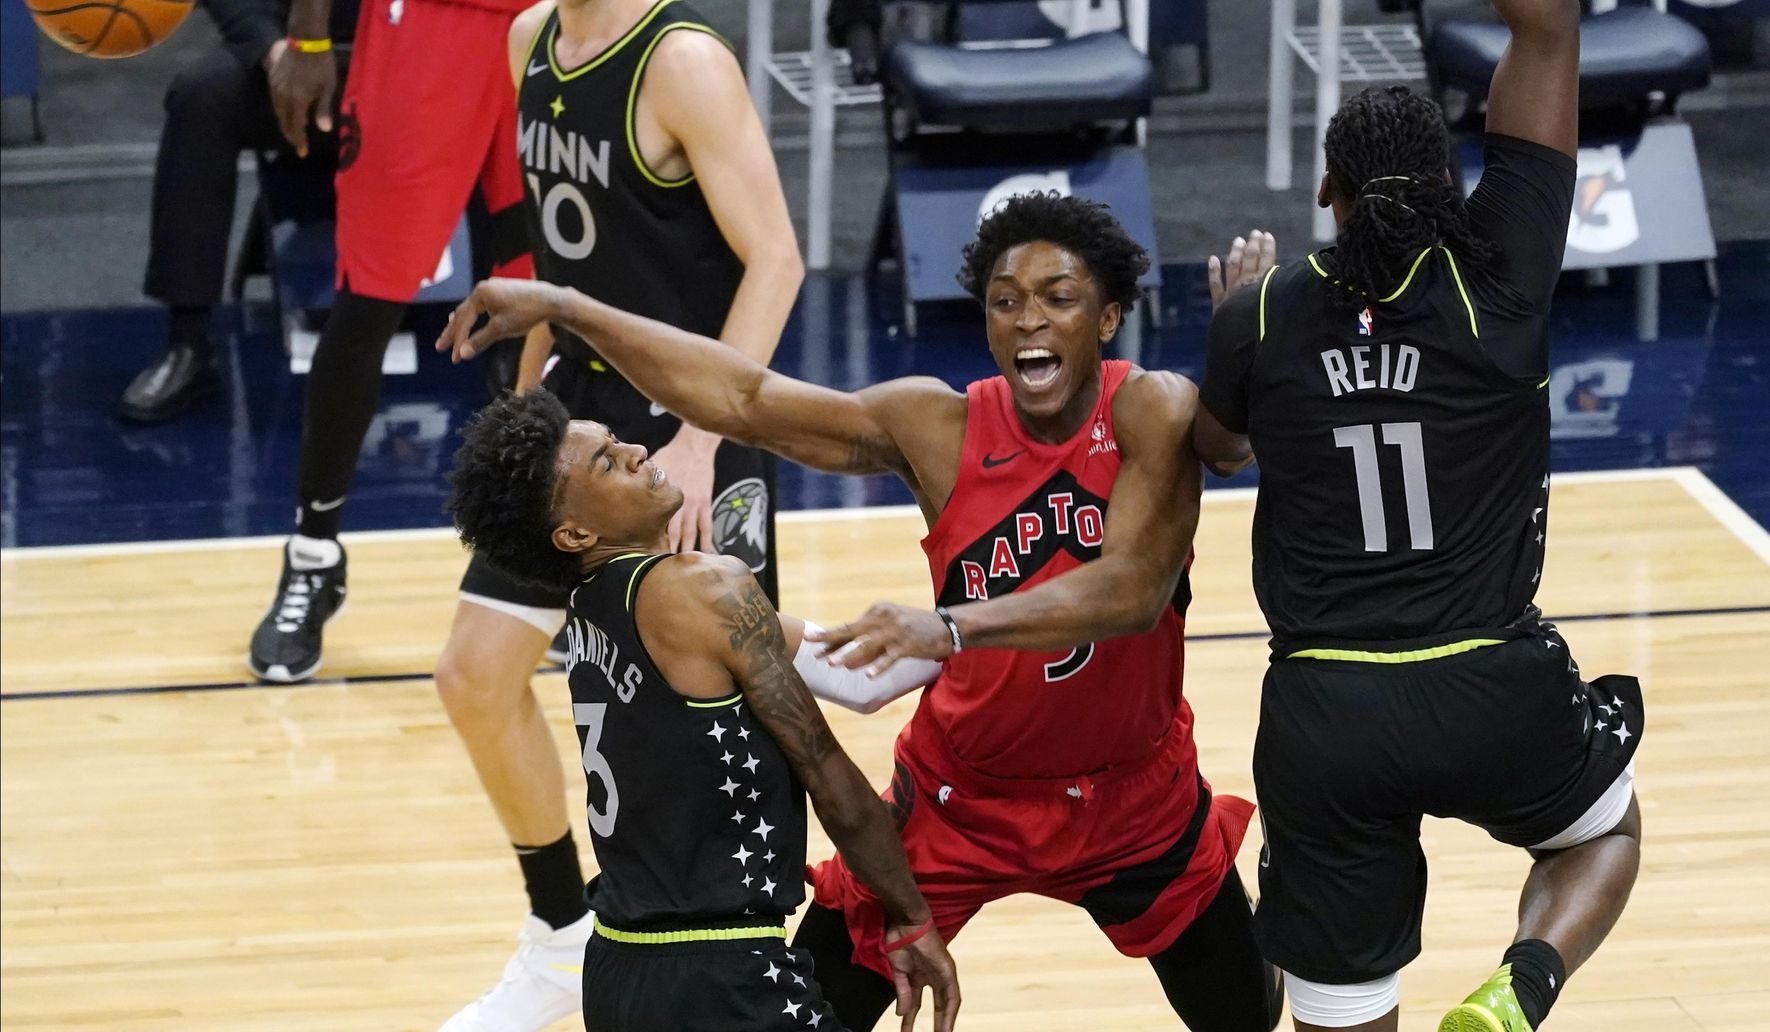 Raptors_timberwolves_basketball_16889_c0-170-4049-2530_s1770x1032